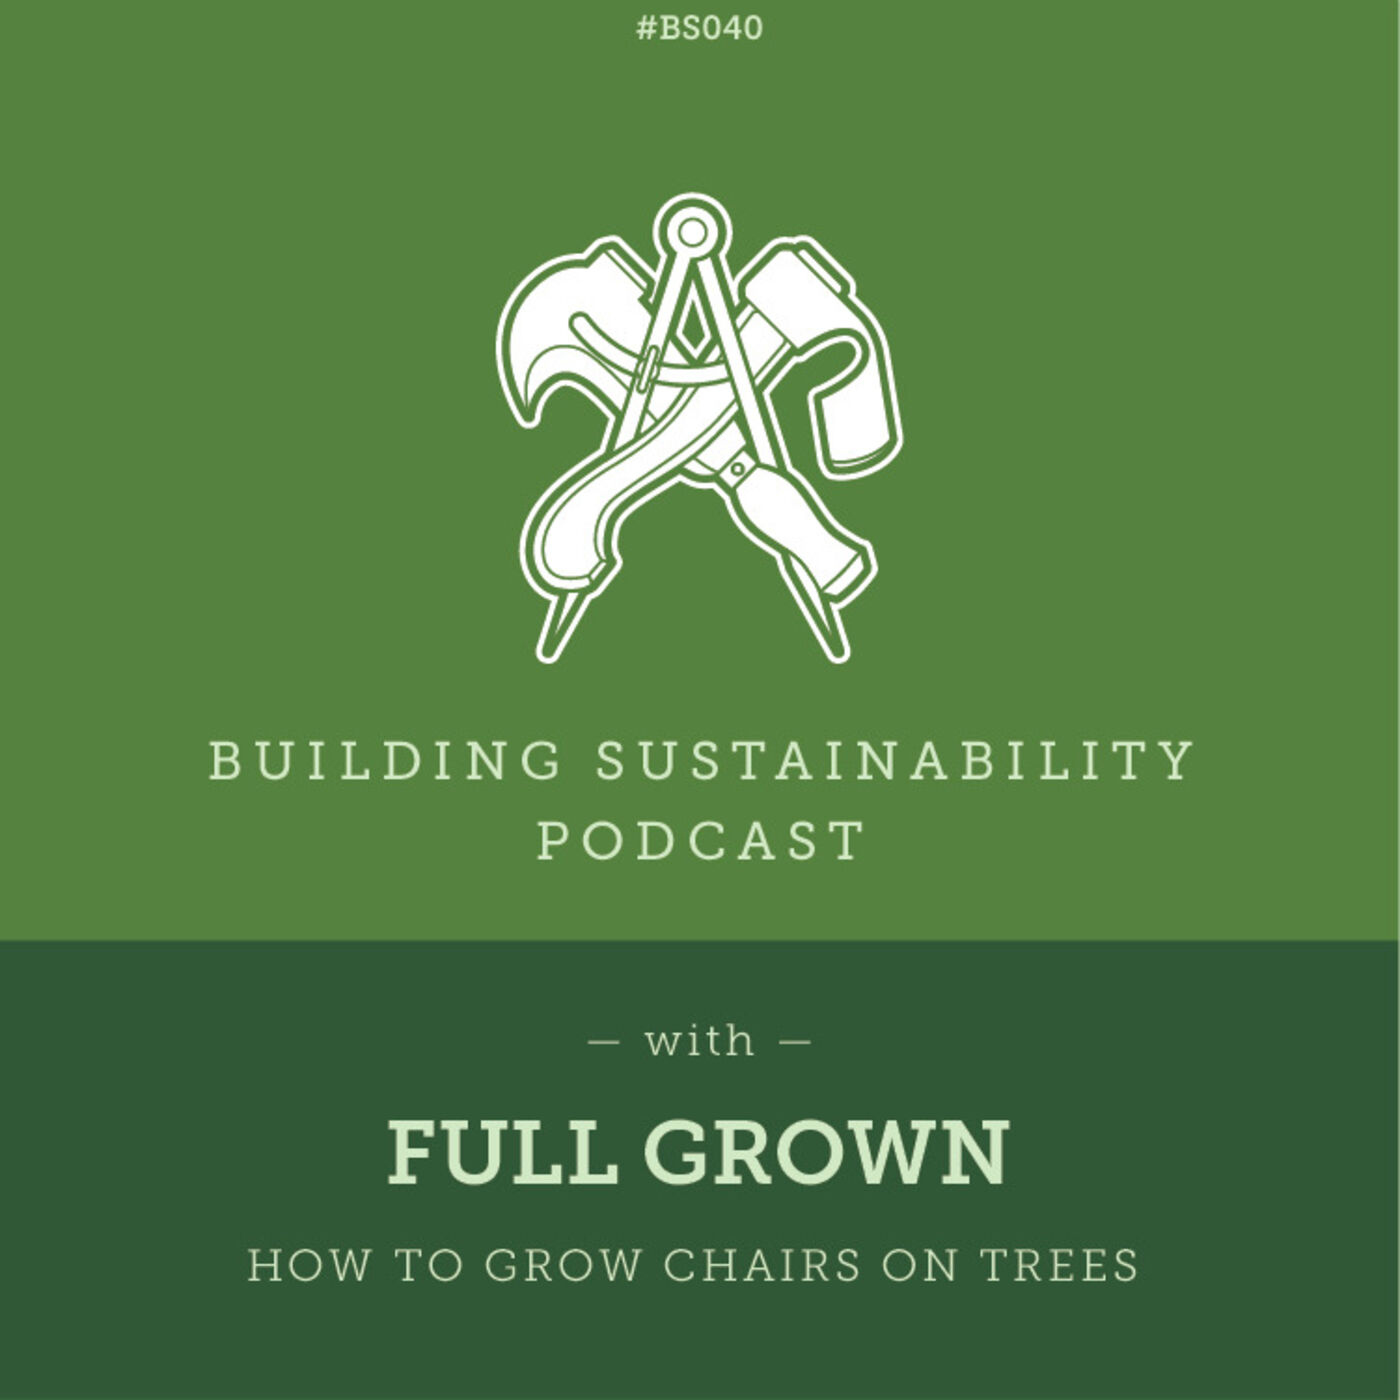 How to grow chairs on trees - Full Grown - Alice & Gavin Munro